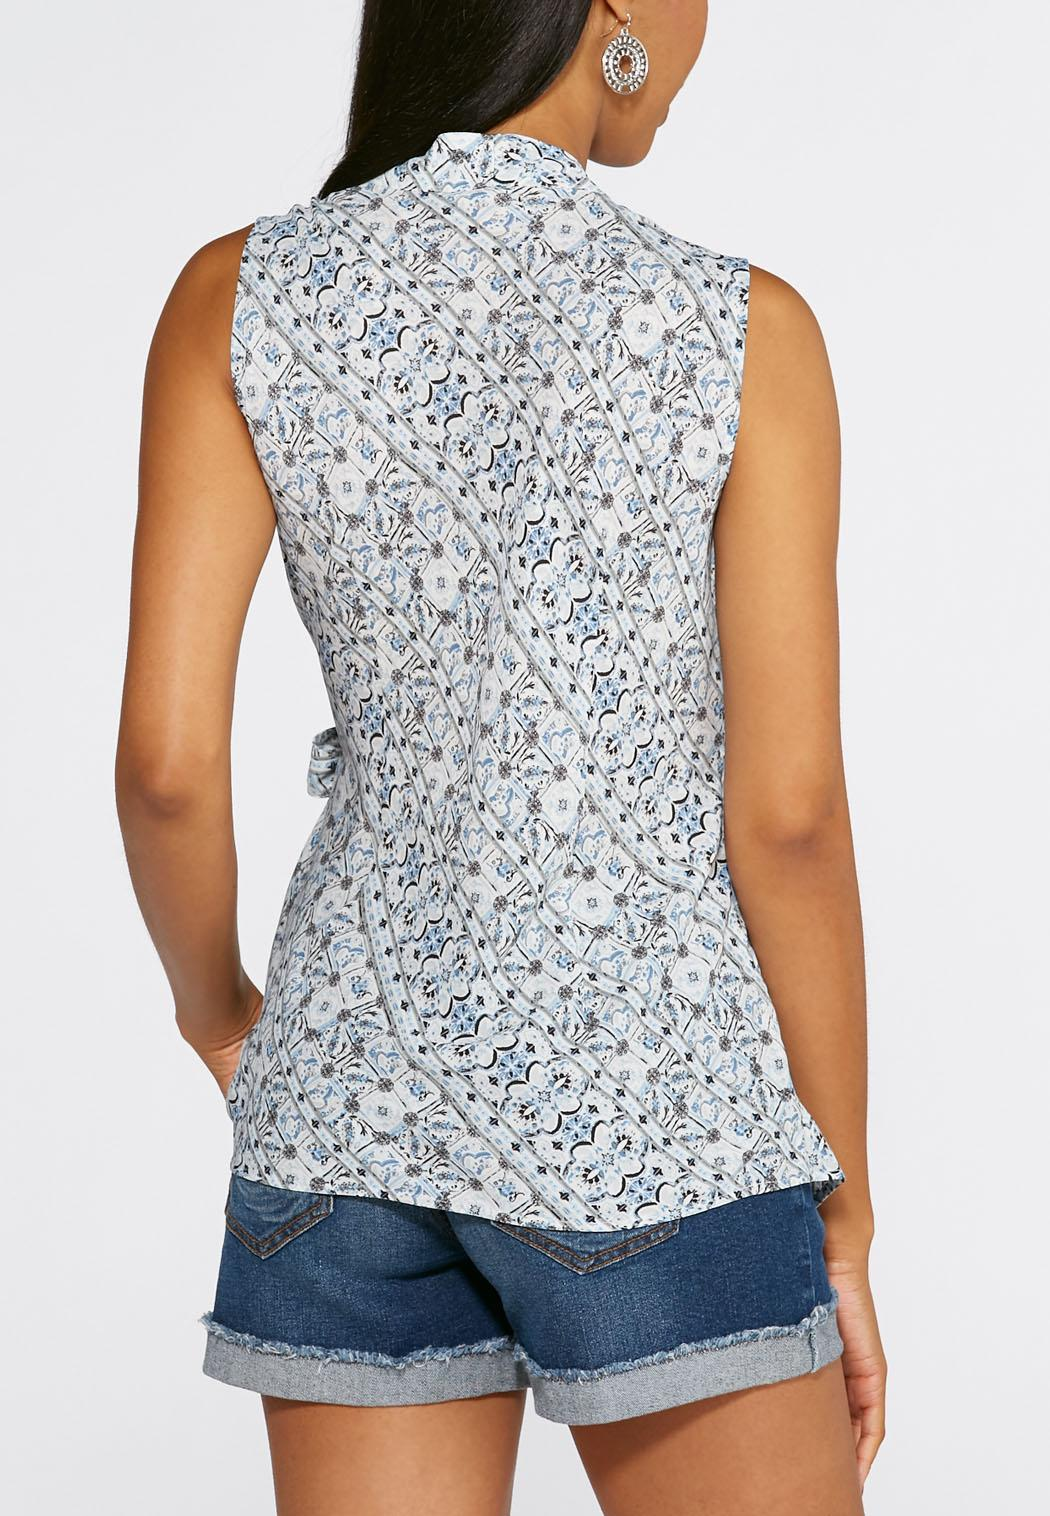 Tie Side Printed Wrap Top Shirts Amp Blouses Cato Fashions